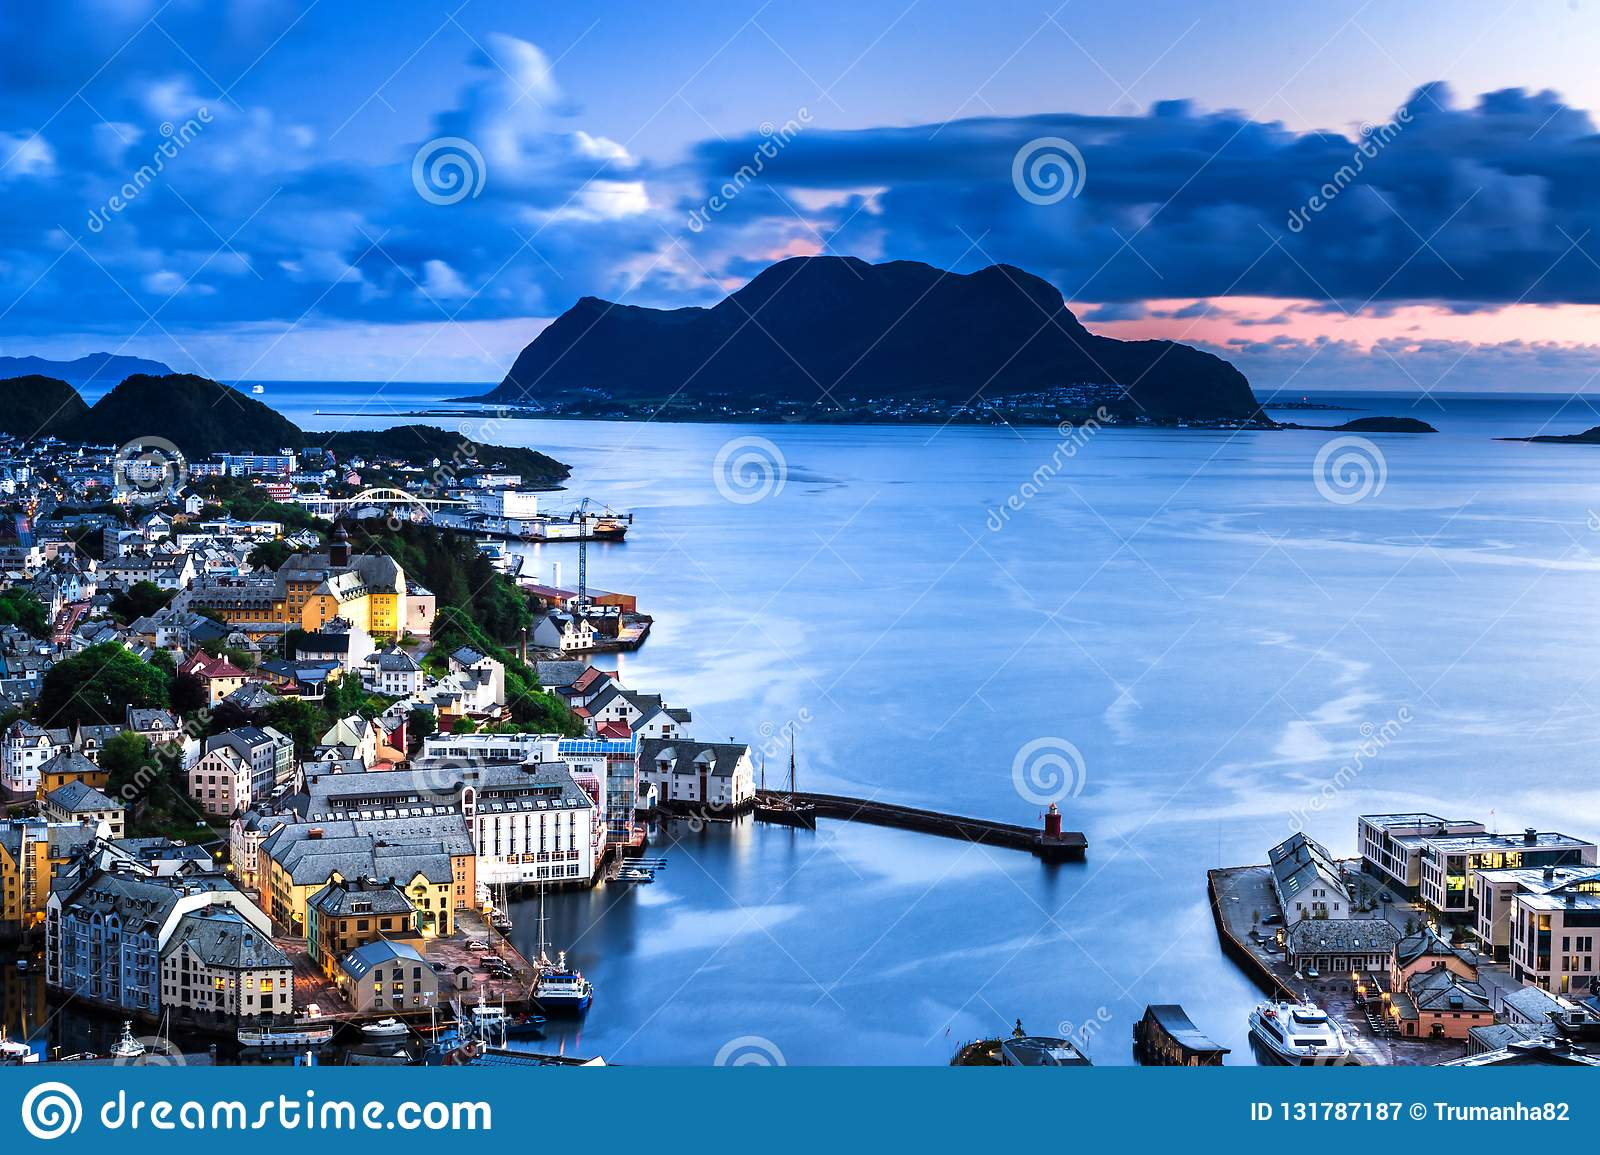 City Scene with Aerial View of Alesund Center, Islands and Atlantic Ocean by Night